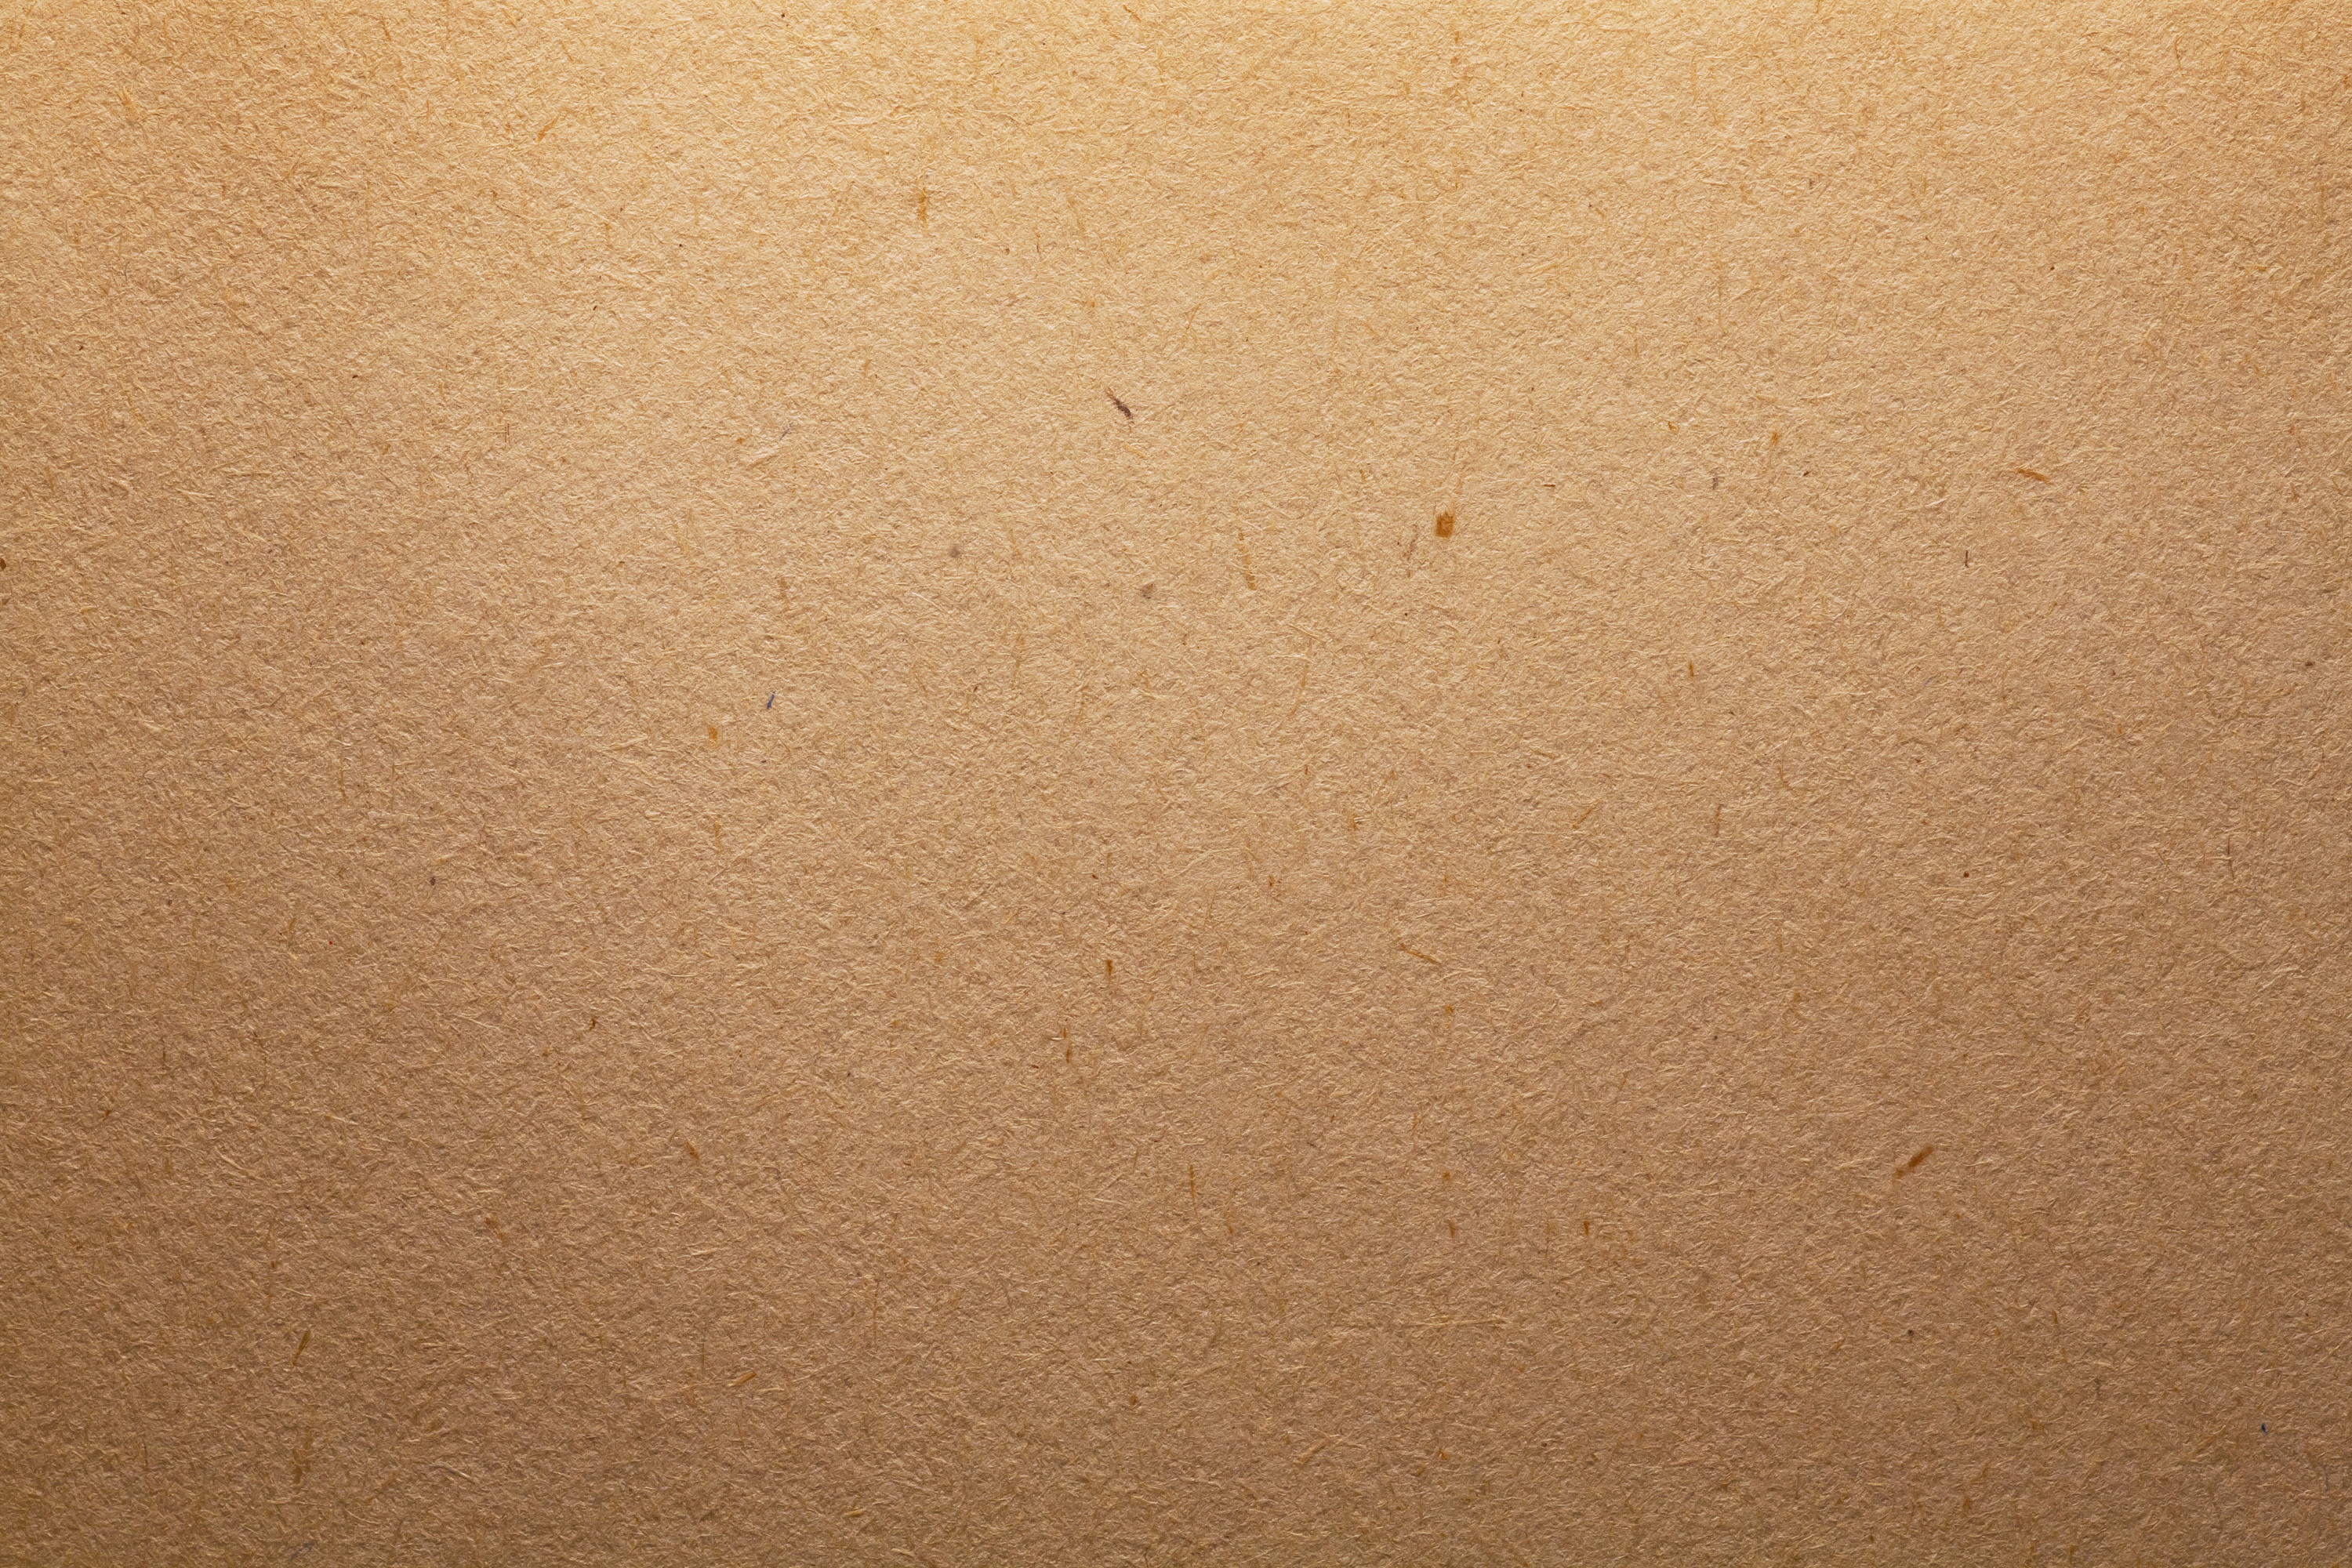 brown craft paper Backgrounds Textures Pinterest Paper Texture 3000x2000